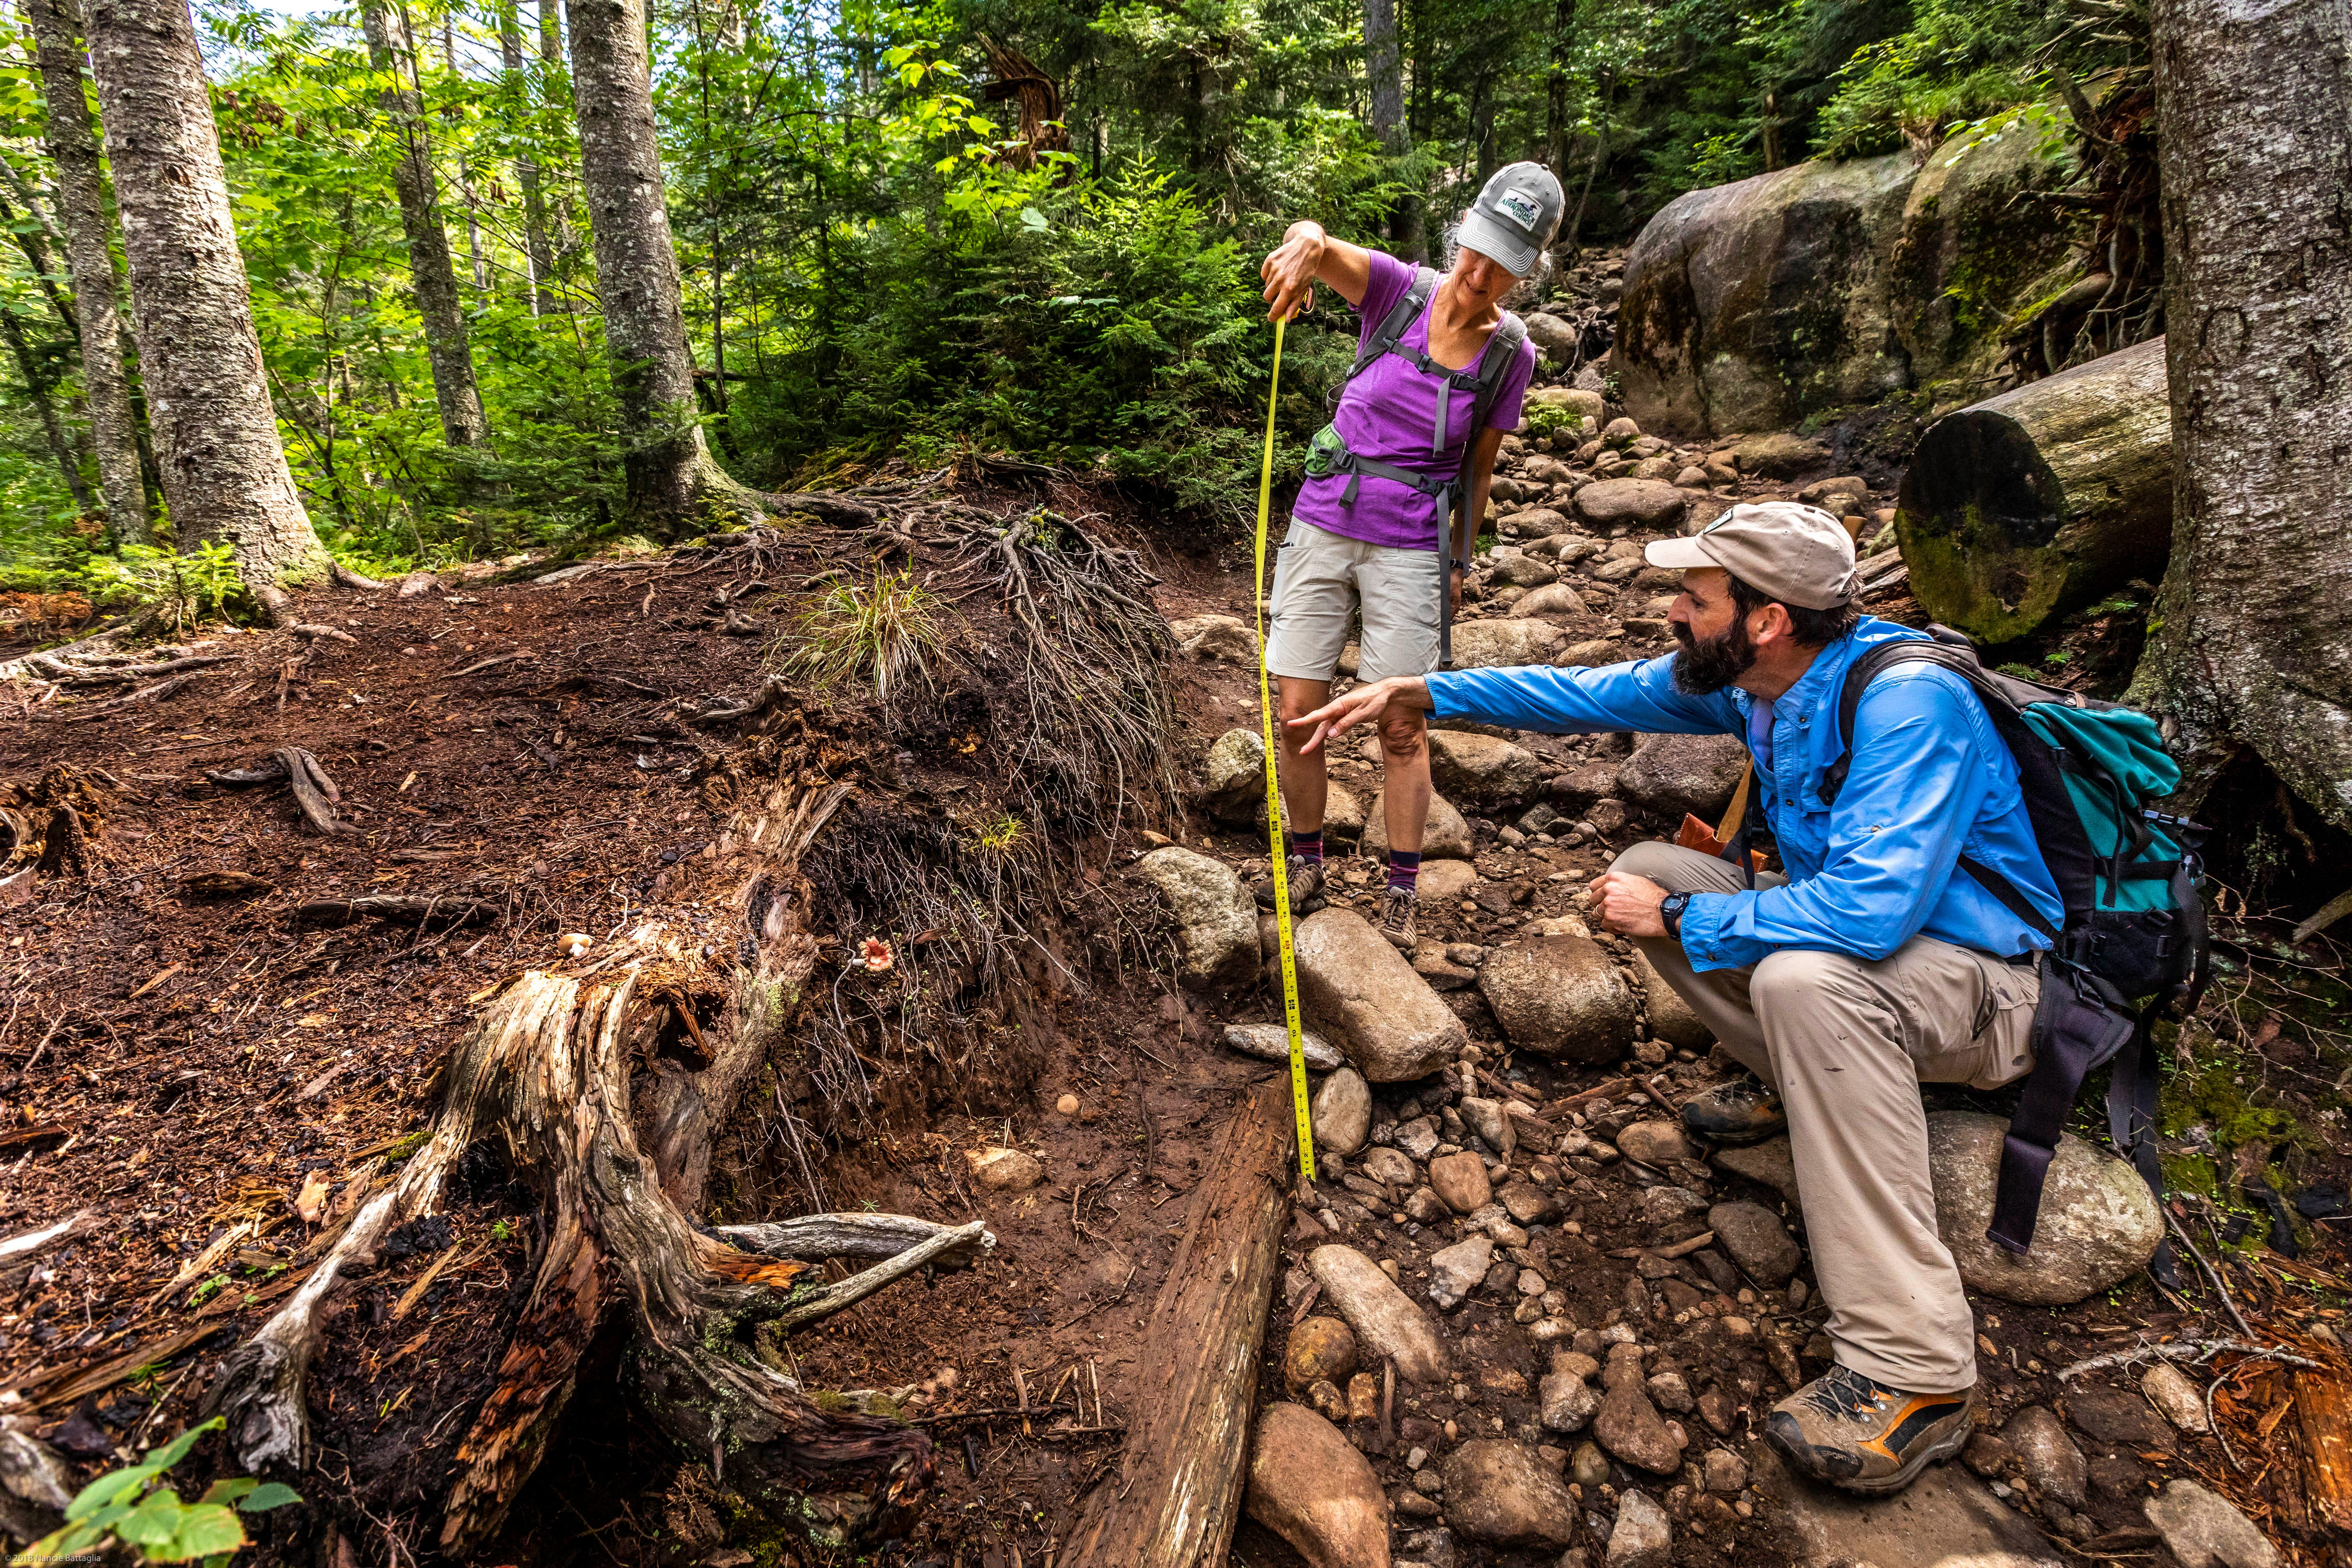 William Janeway, executive director of the nonprofit Adirondack Council, measures trail erosion on Ampersand Mountain in the High Peaks region of the Adirondack Park in August, 2018.